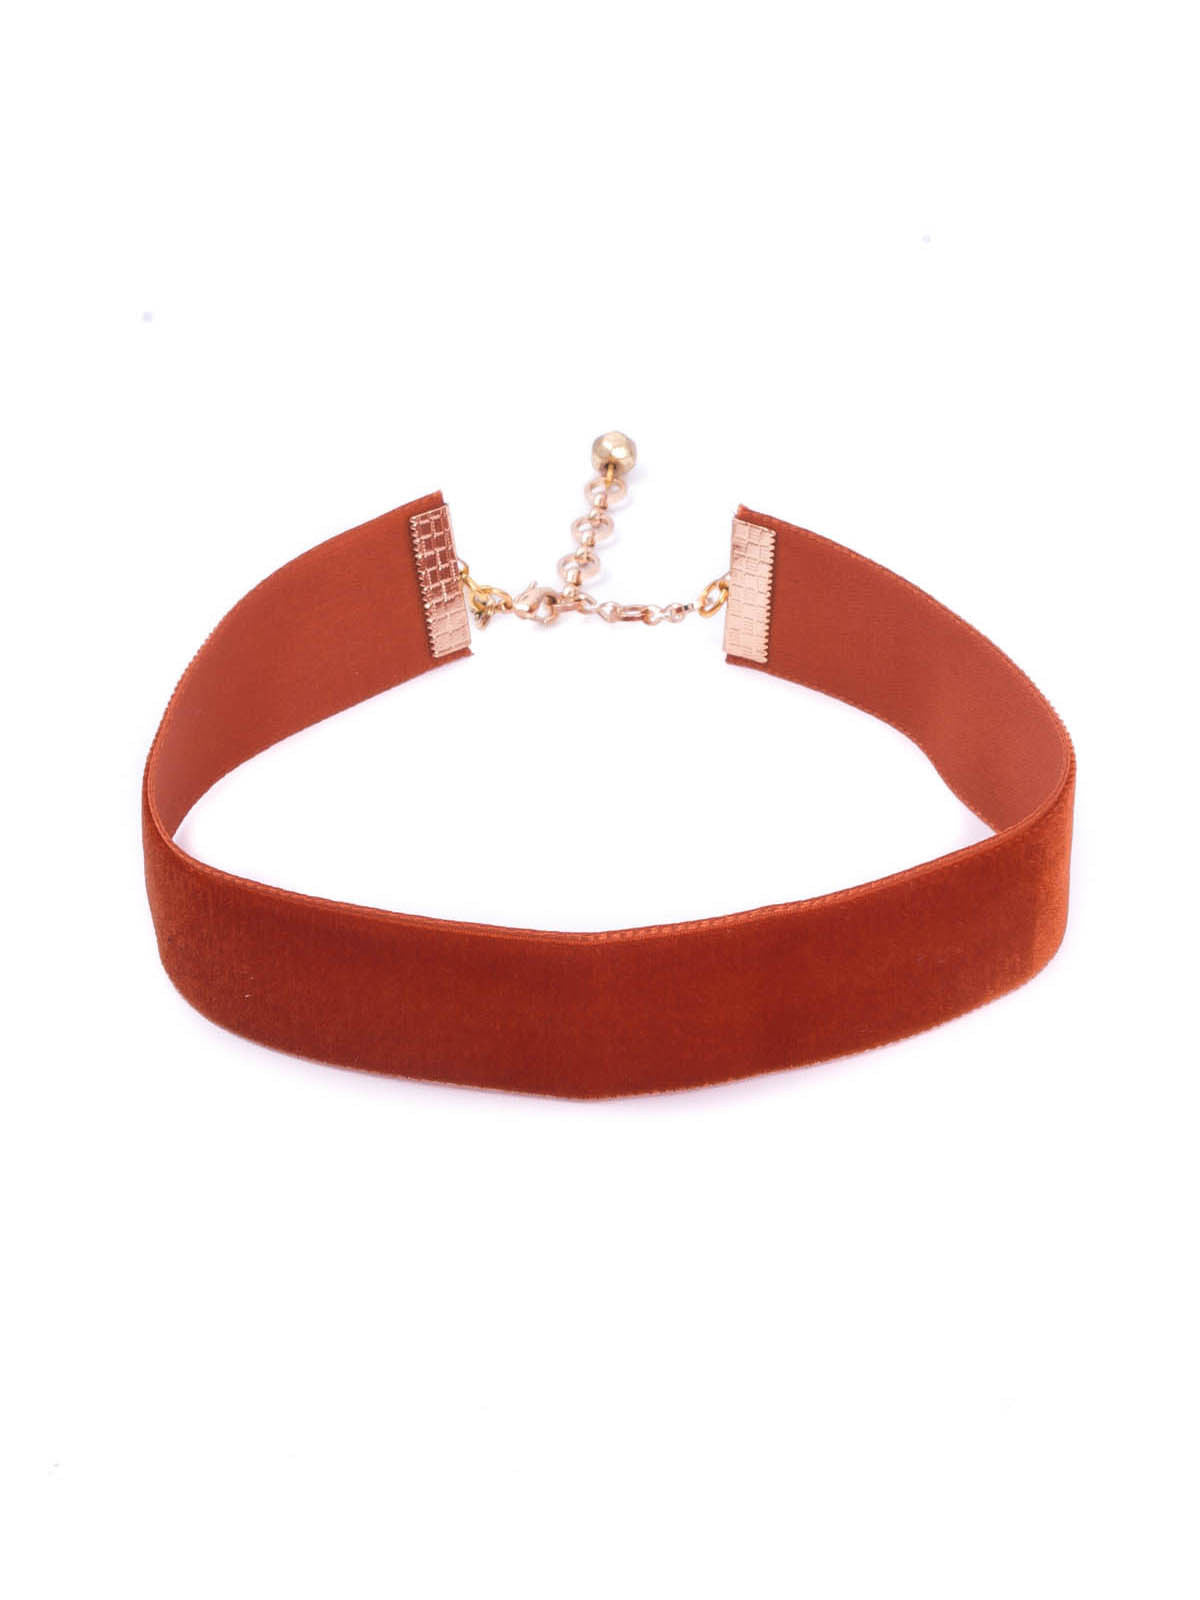 The Marla Choker